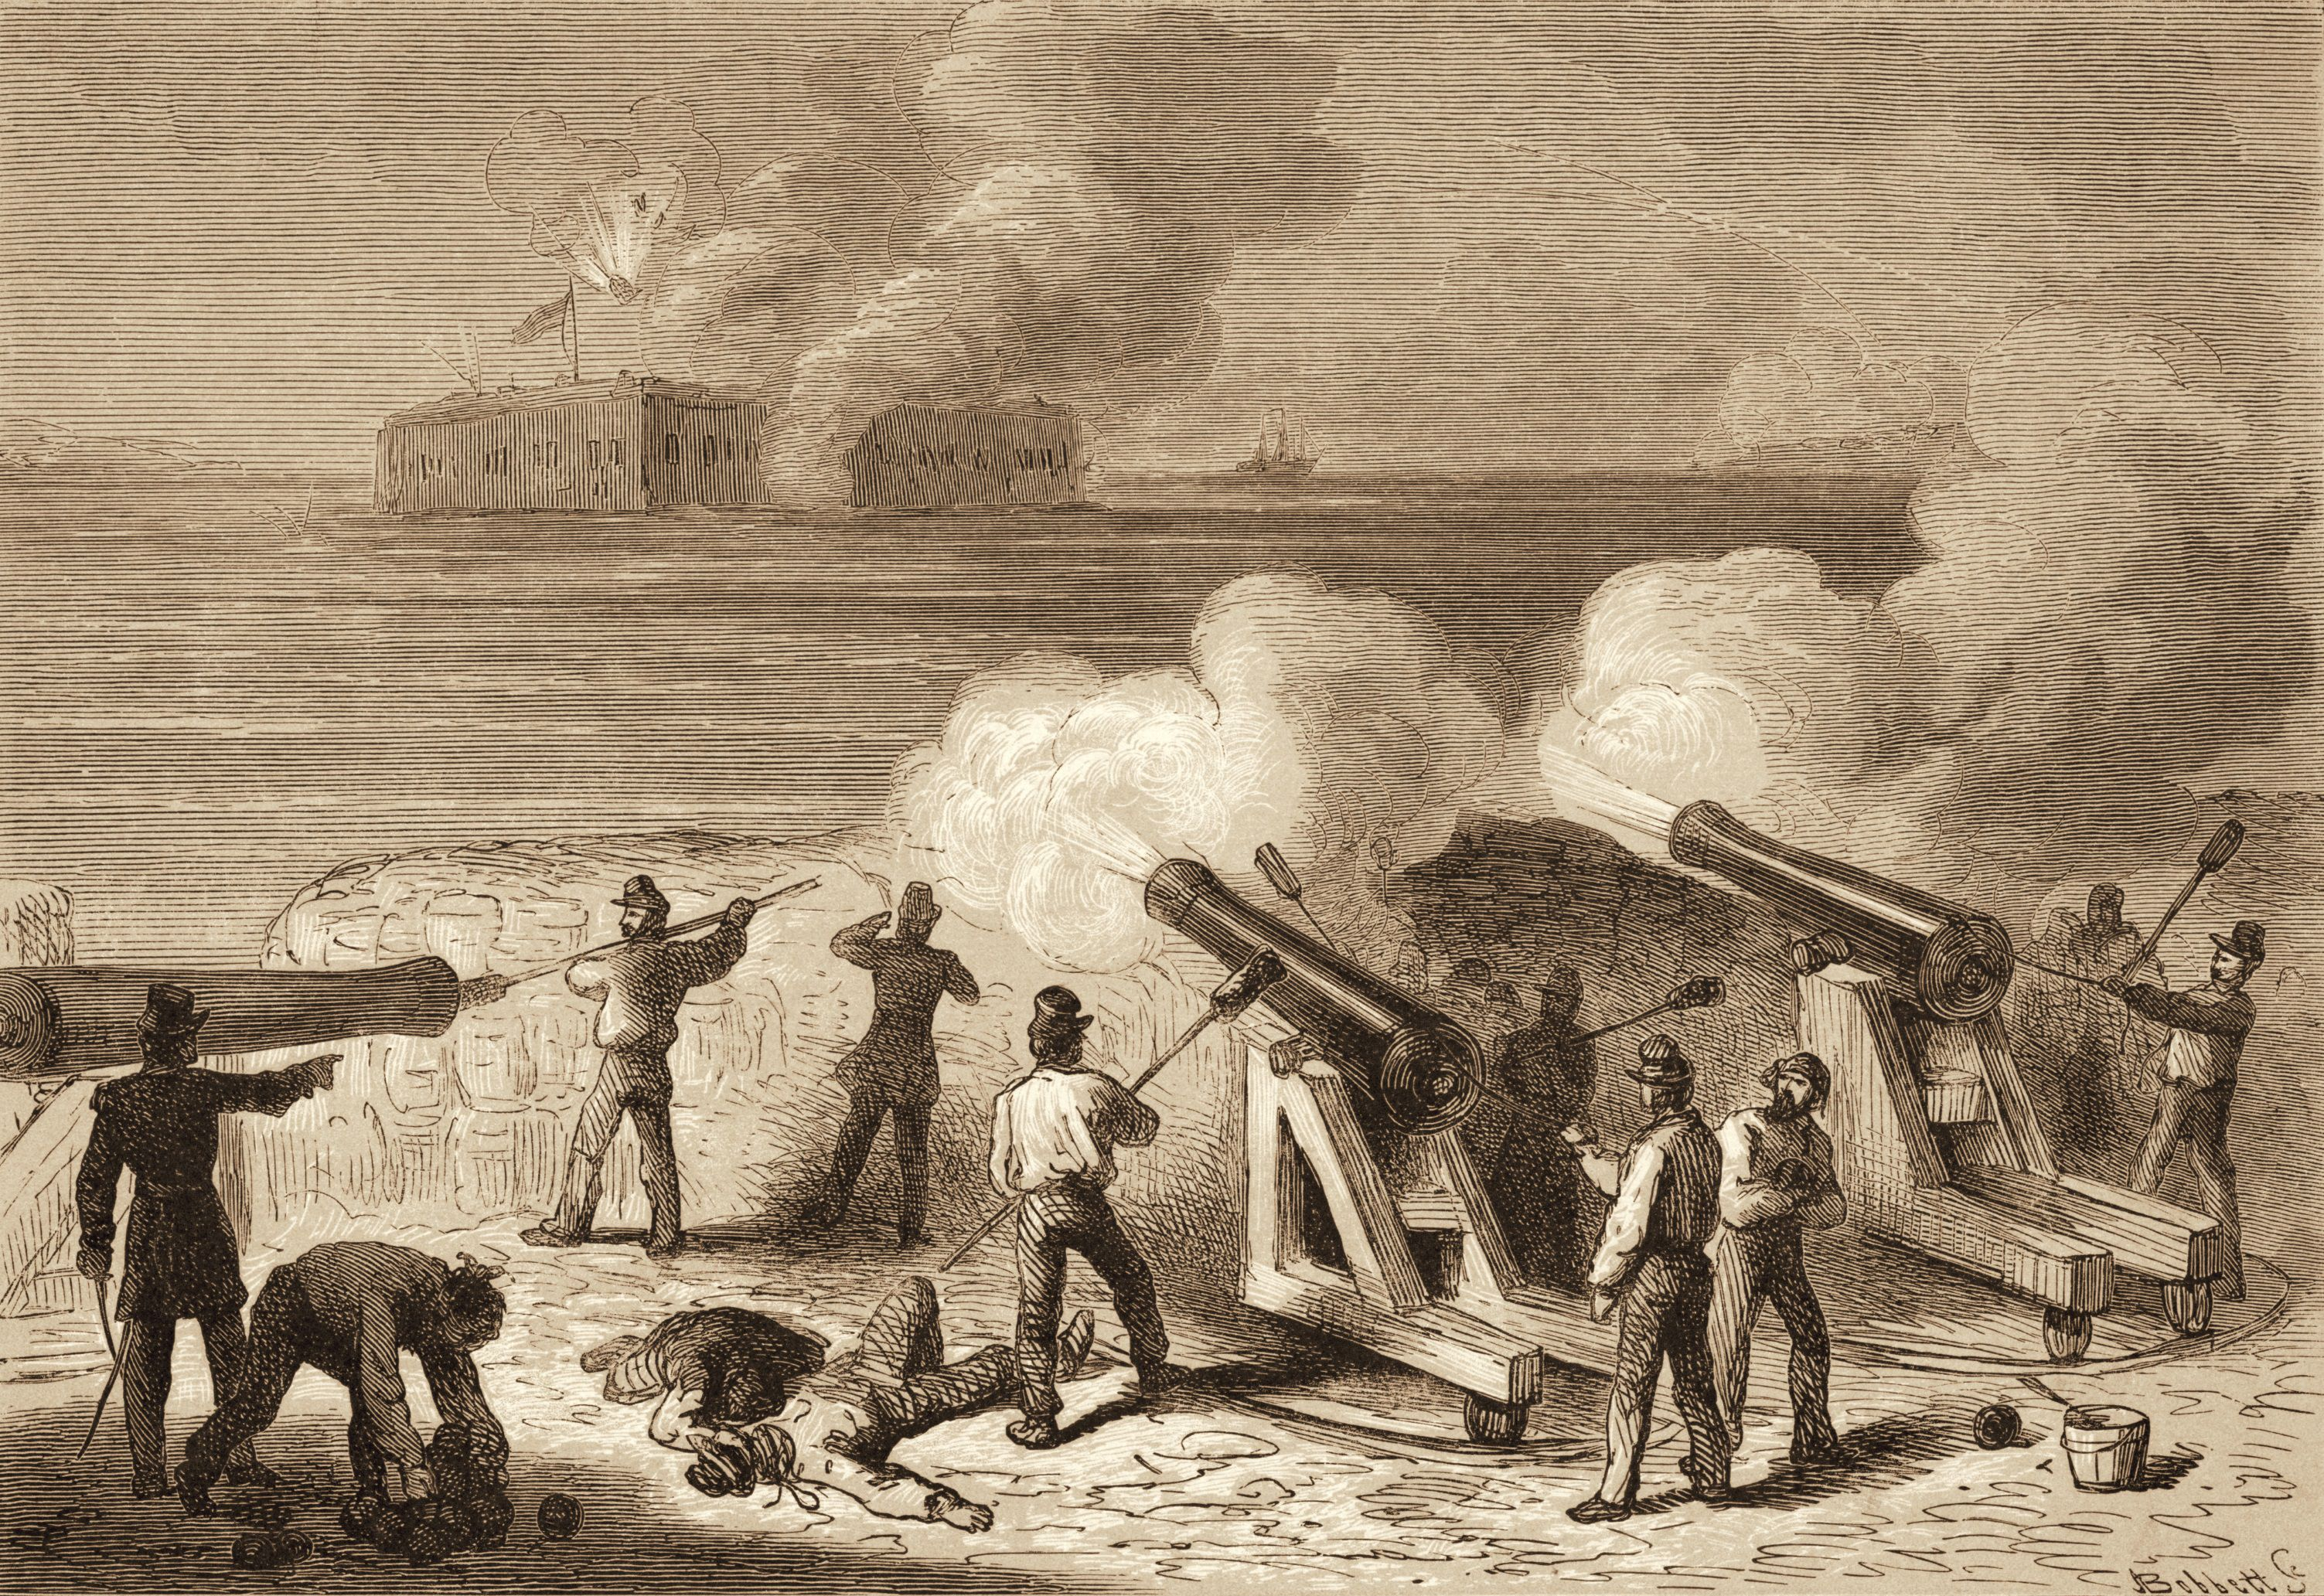 Illustration of the attack on Fort Sumter